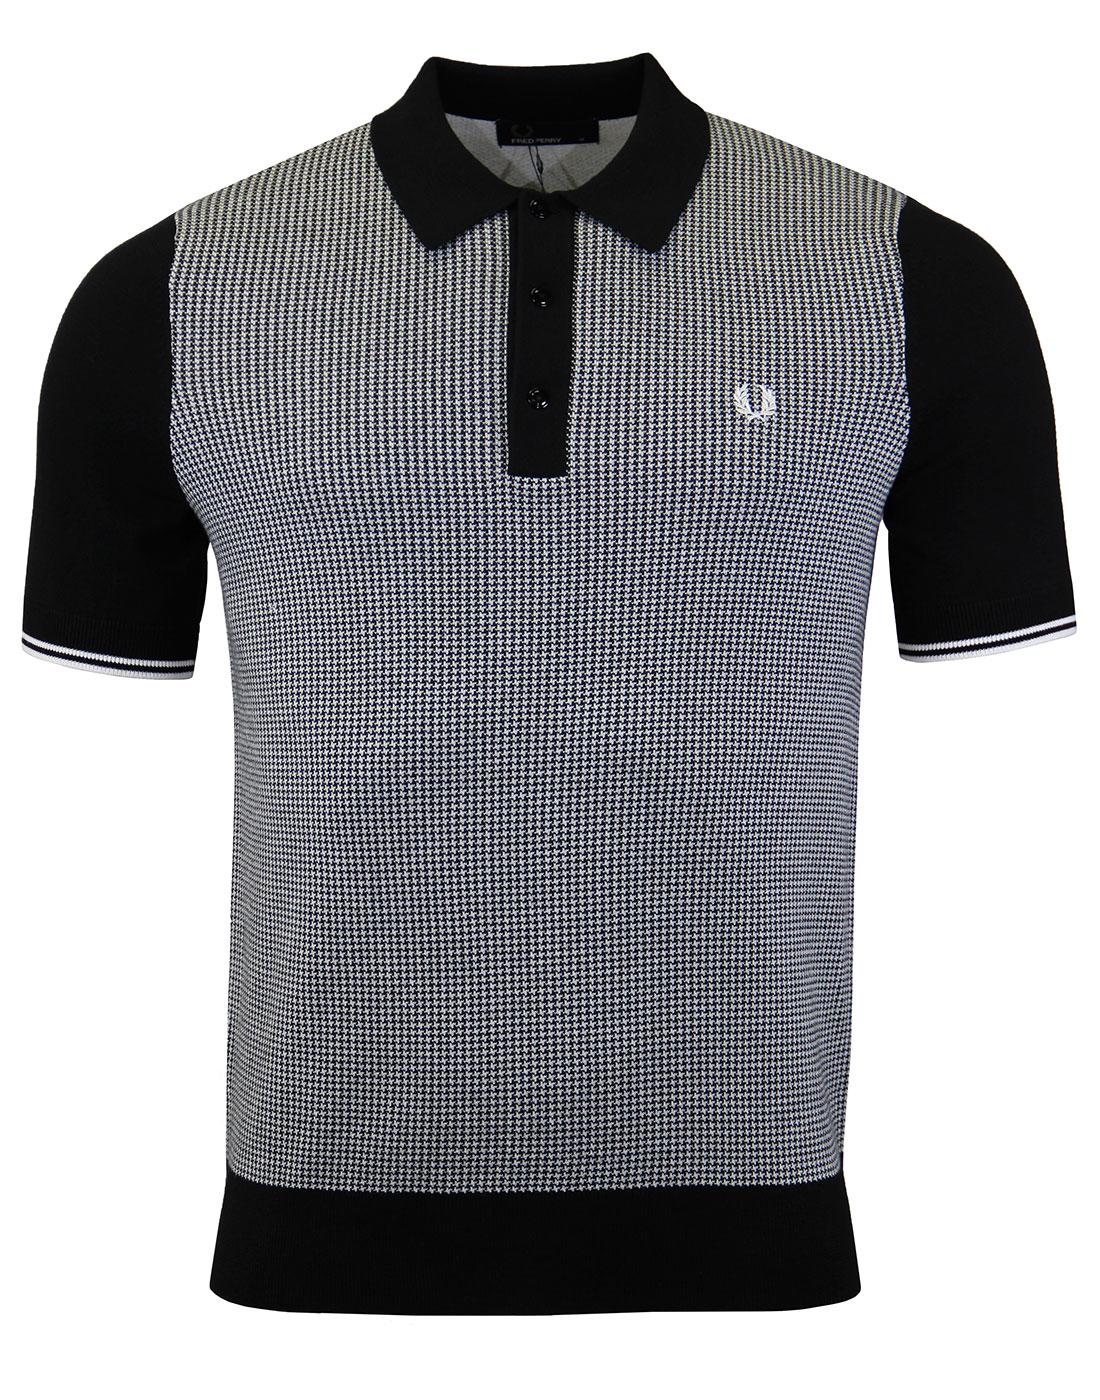 FRED PERRY Retro Mod Houndstooth Knitted Polo